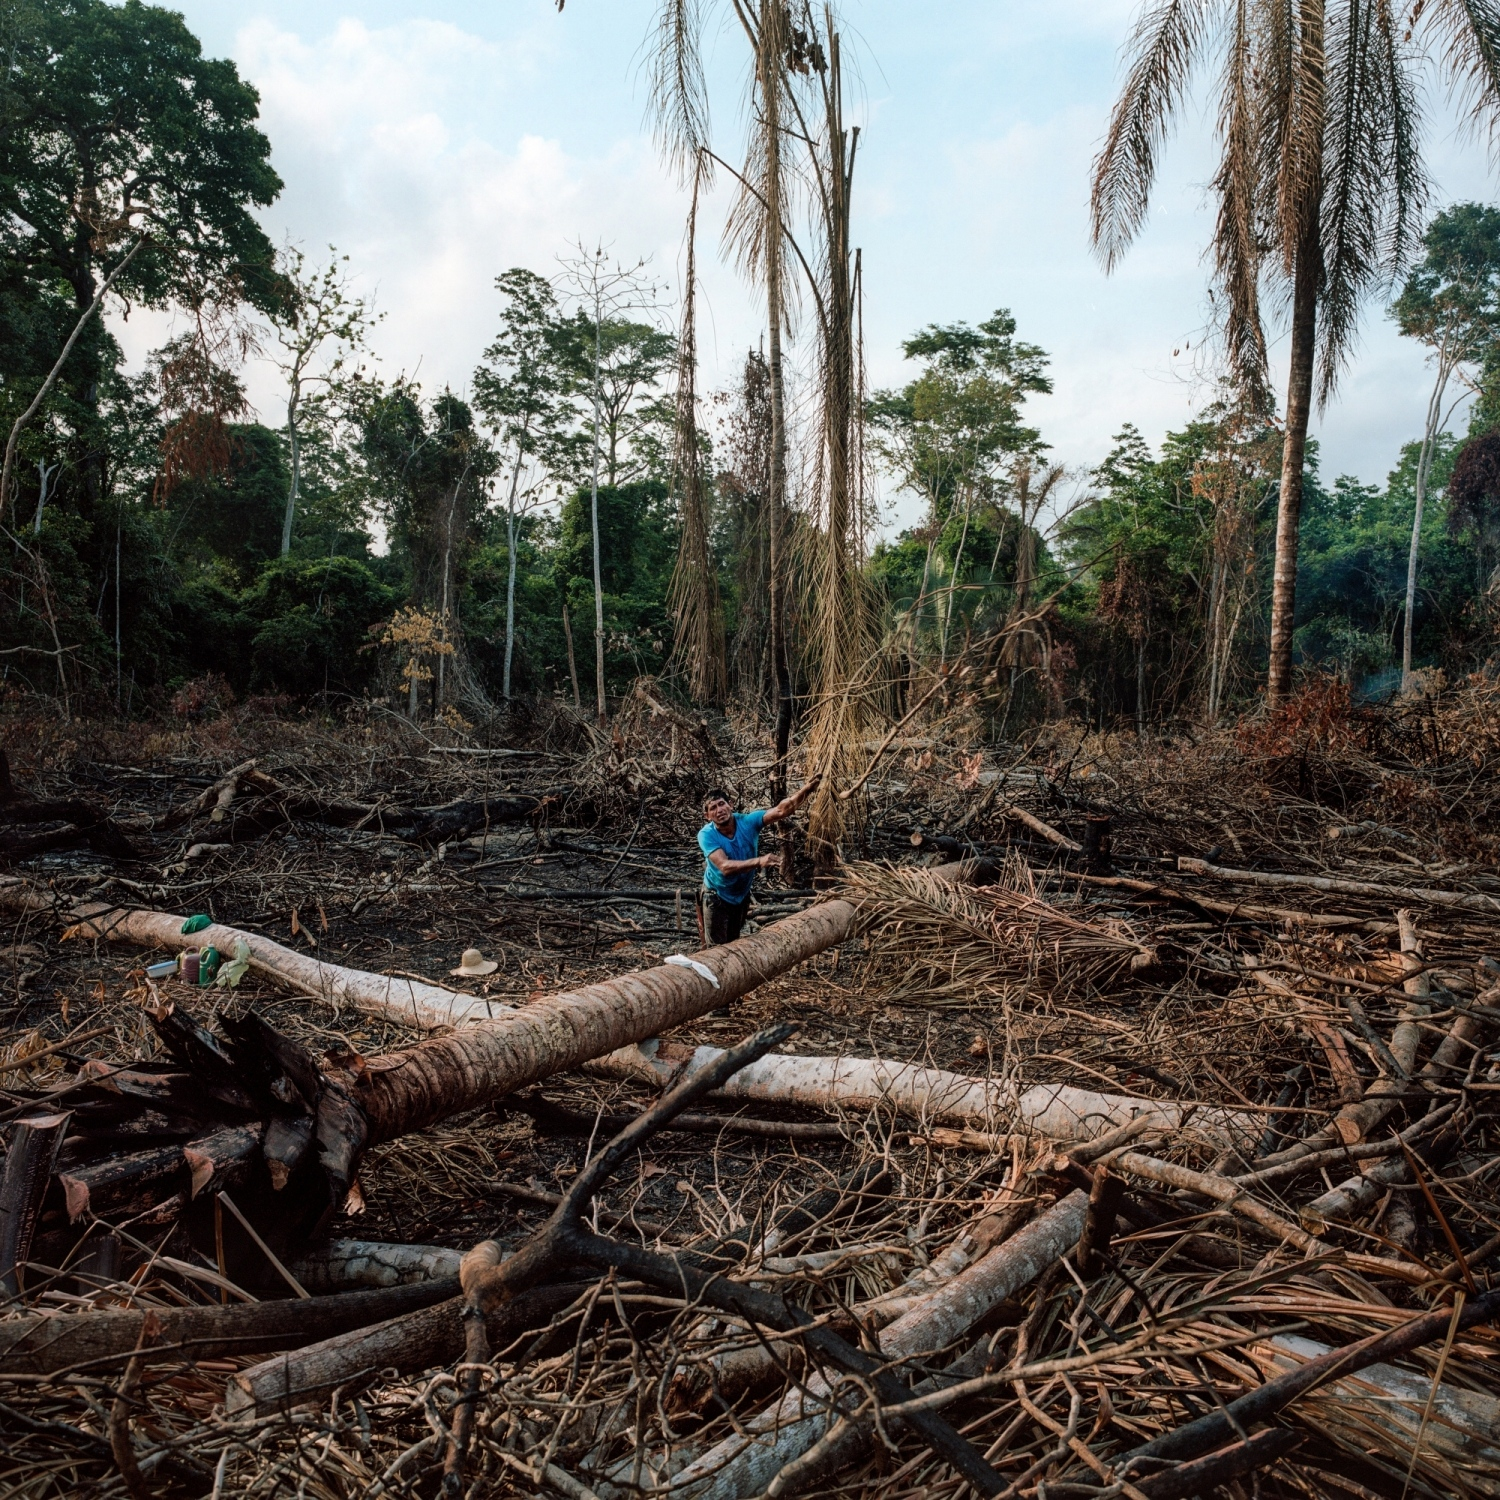 "2016. Pedro Vianna of the Juruna tribe, clears trees in a slash and burn in order to plant corn on the Paquiçamba indigenous territory. The Juruna live on the islands and banks of the Volta Grange or Bing Bend of the Xingu River. They are known as ""proprietors of the river"" for their great ancestral knowledge of its flow, and for having migrated for centuries from the mouth of the Xingu to its headwaters. The Paquiçamba indigenous territory, sits roughly 10 km below one of Belo Monte's reservoirs which has restricted the flow of water on the Volta Grange impacting their traditional fisheries.  As a recourse to the disruption in their economy Norte Energia has advised the tribe to plant corn to both feed chickens for the community and to sell at market.  /Aaron Vincent Elkaim"